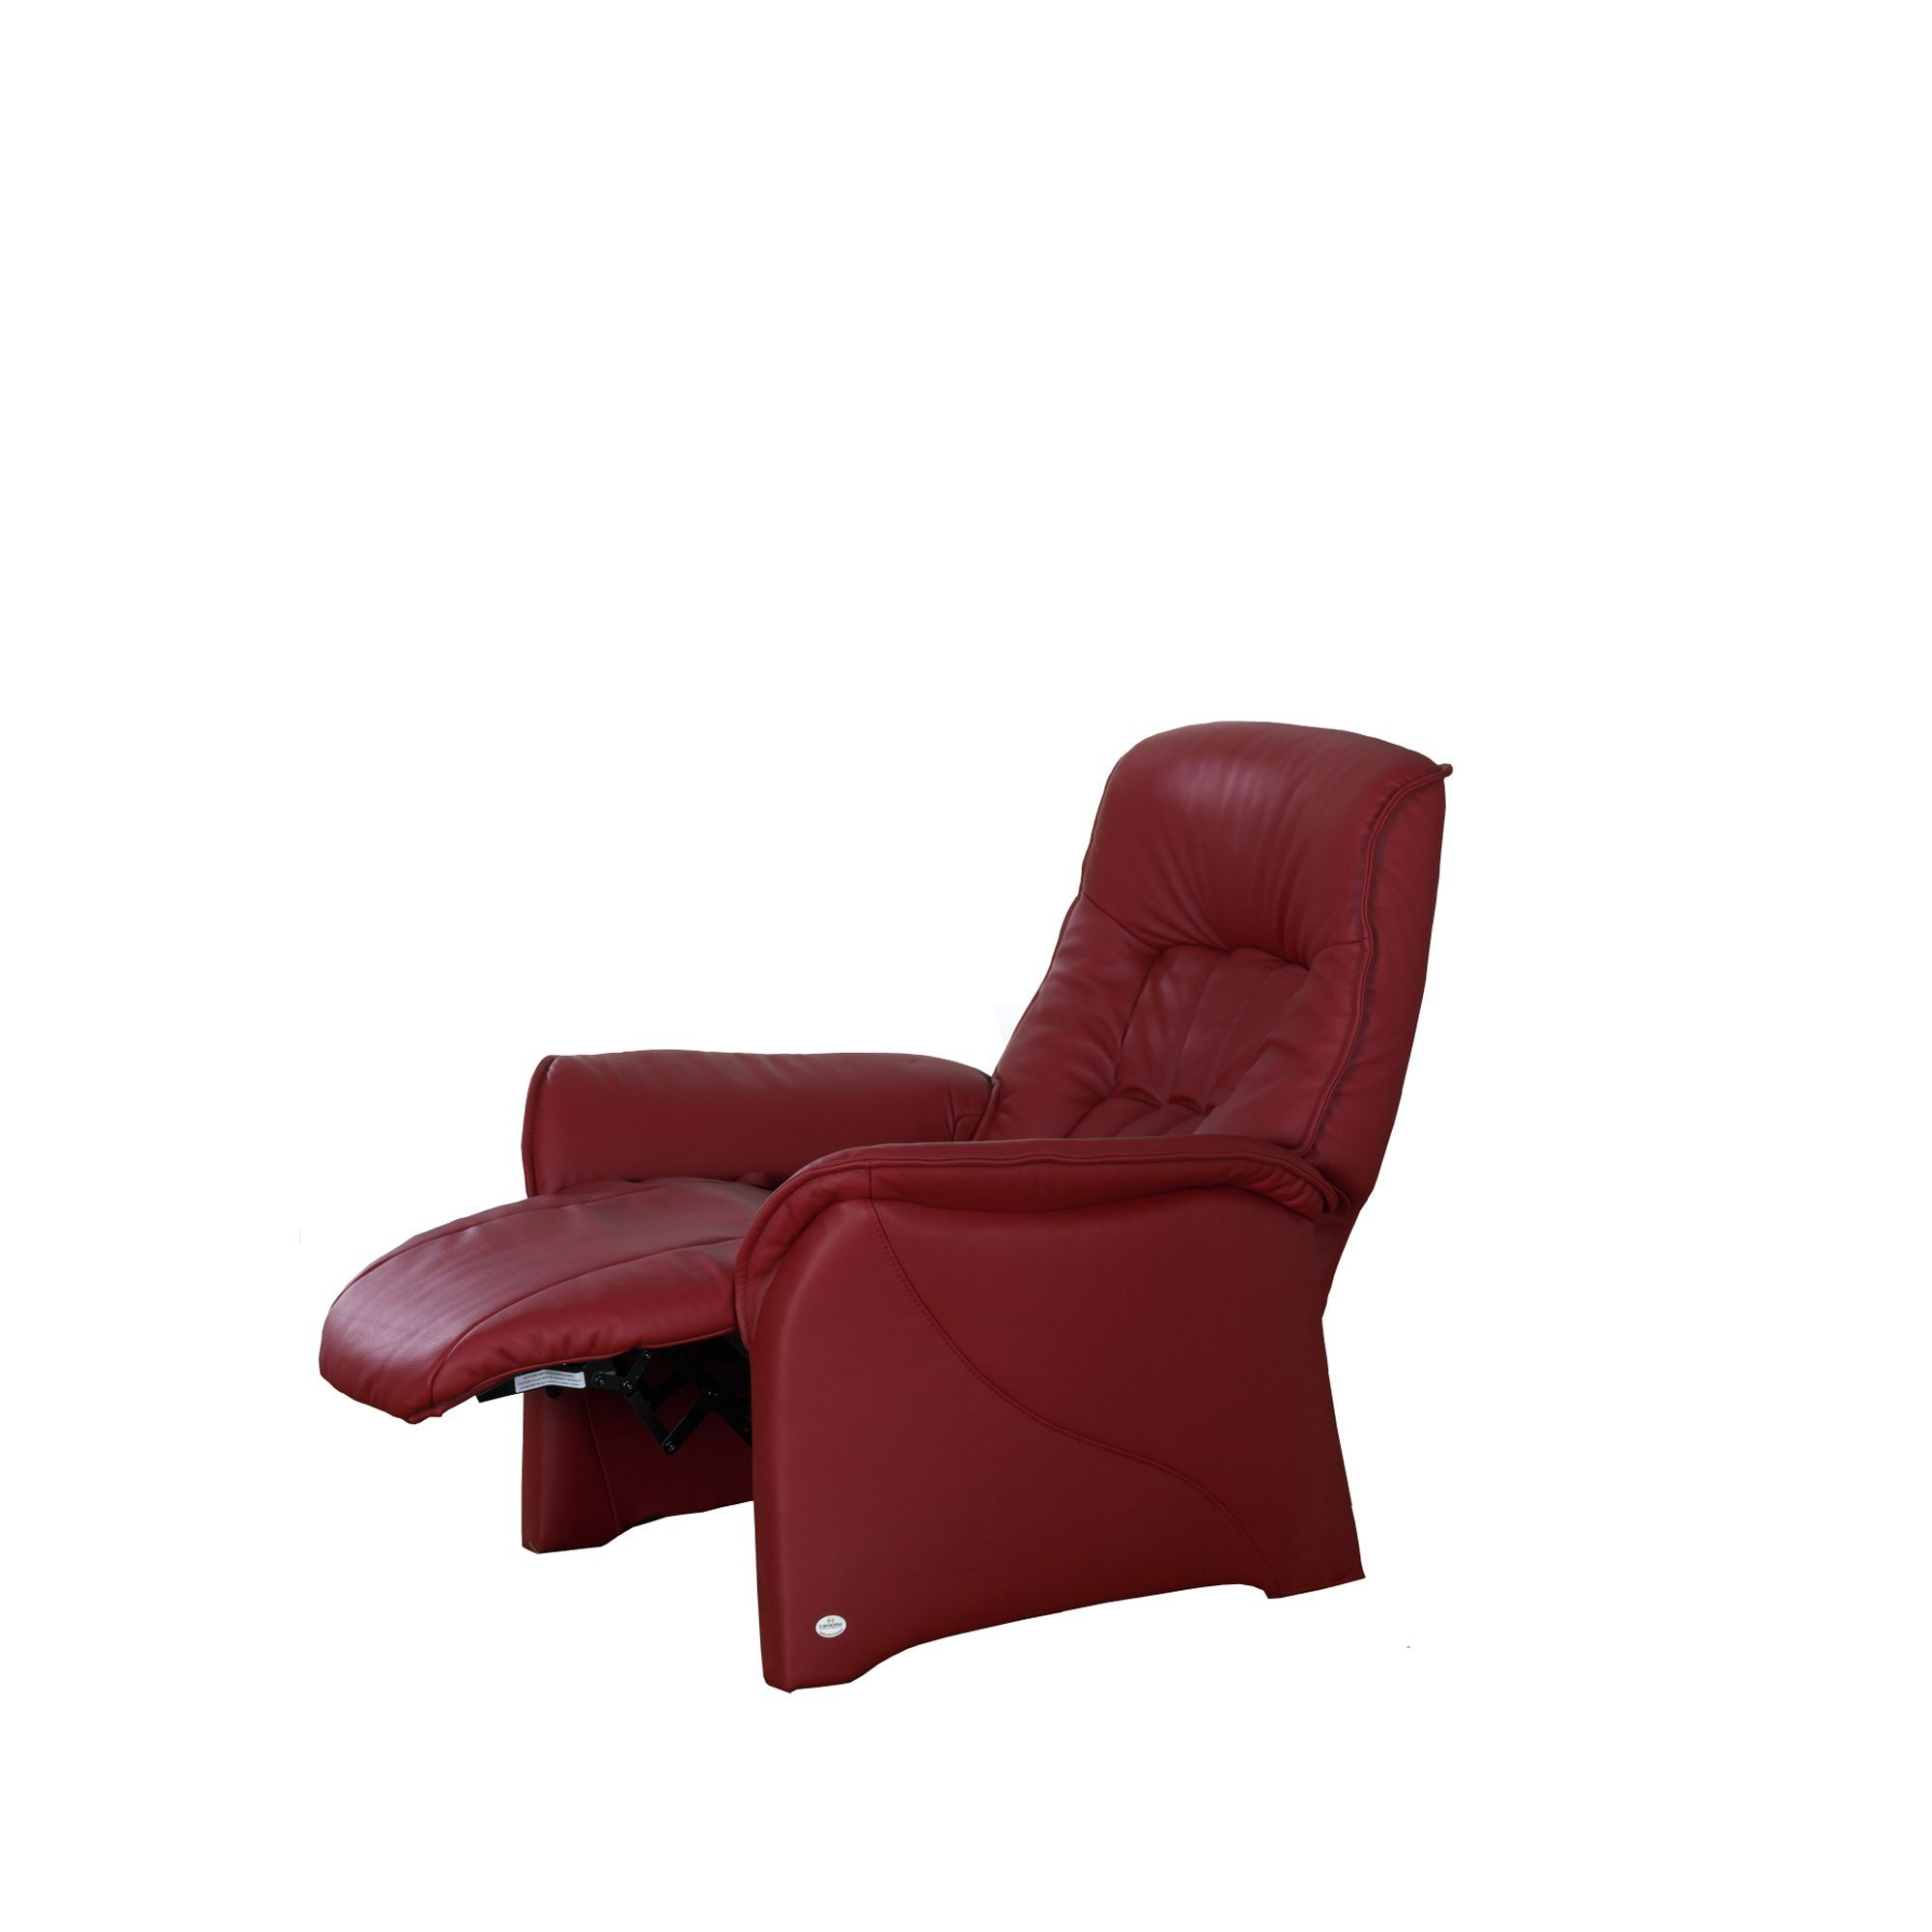 Electric Reclining Chair Himolla Rhine Electric Recliner Armchair Himolla